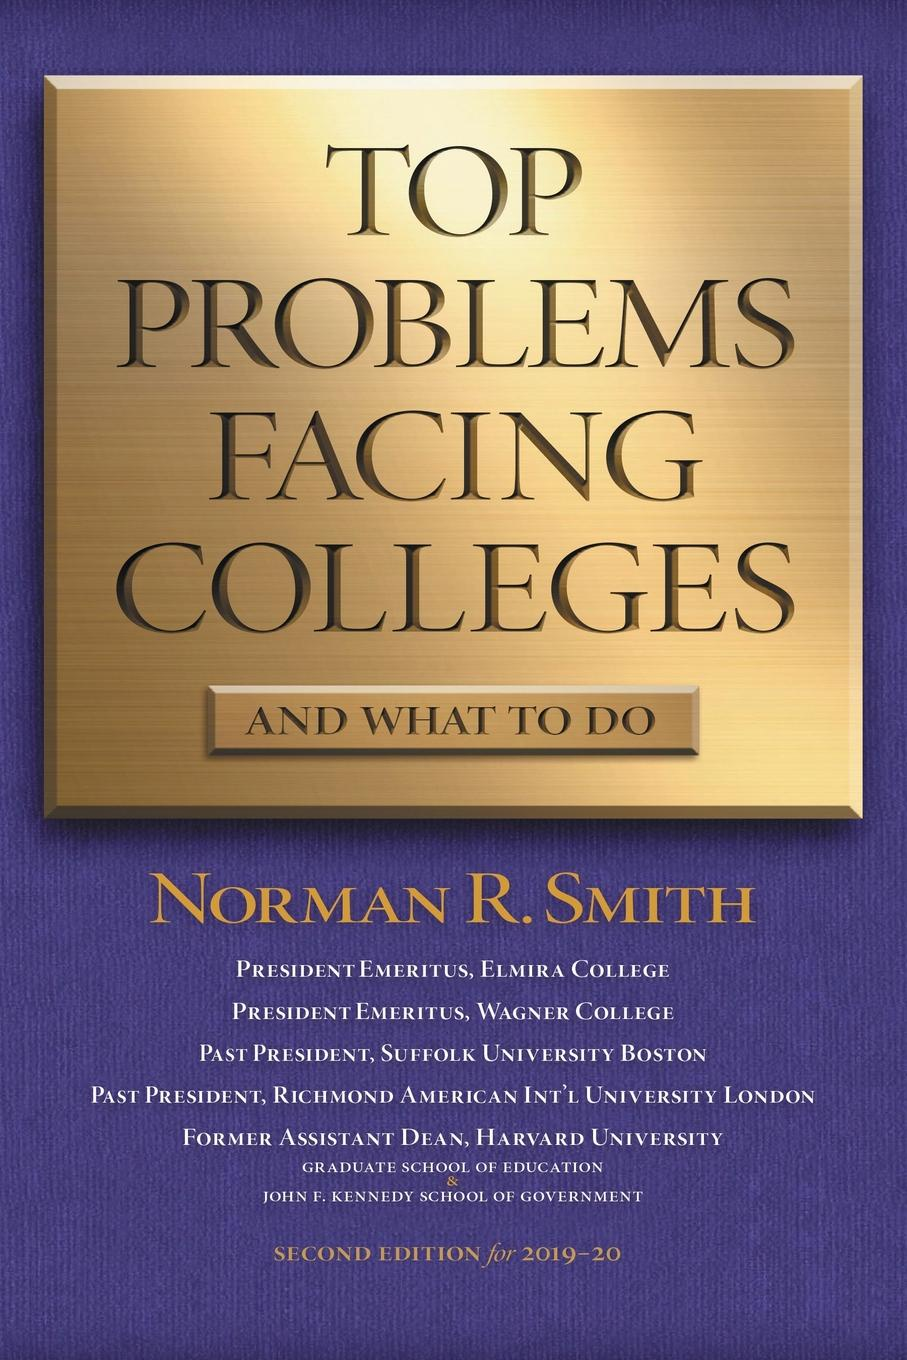 Norman R. Smith Top Problems Facing Colleges. And What to Do katarzyna szydlowska what are the major problems facing vaxess technologies